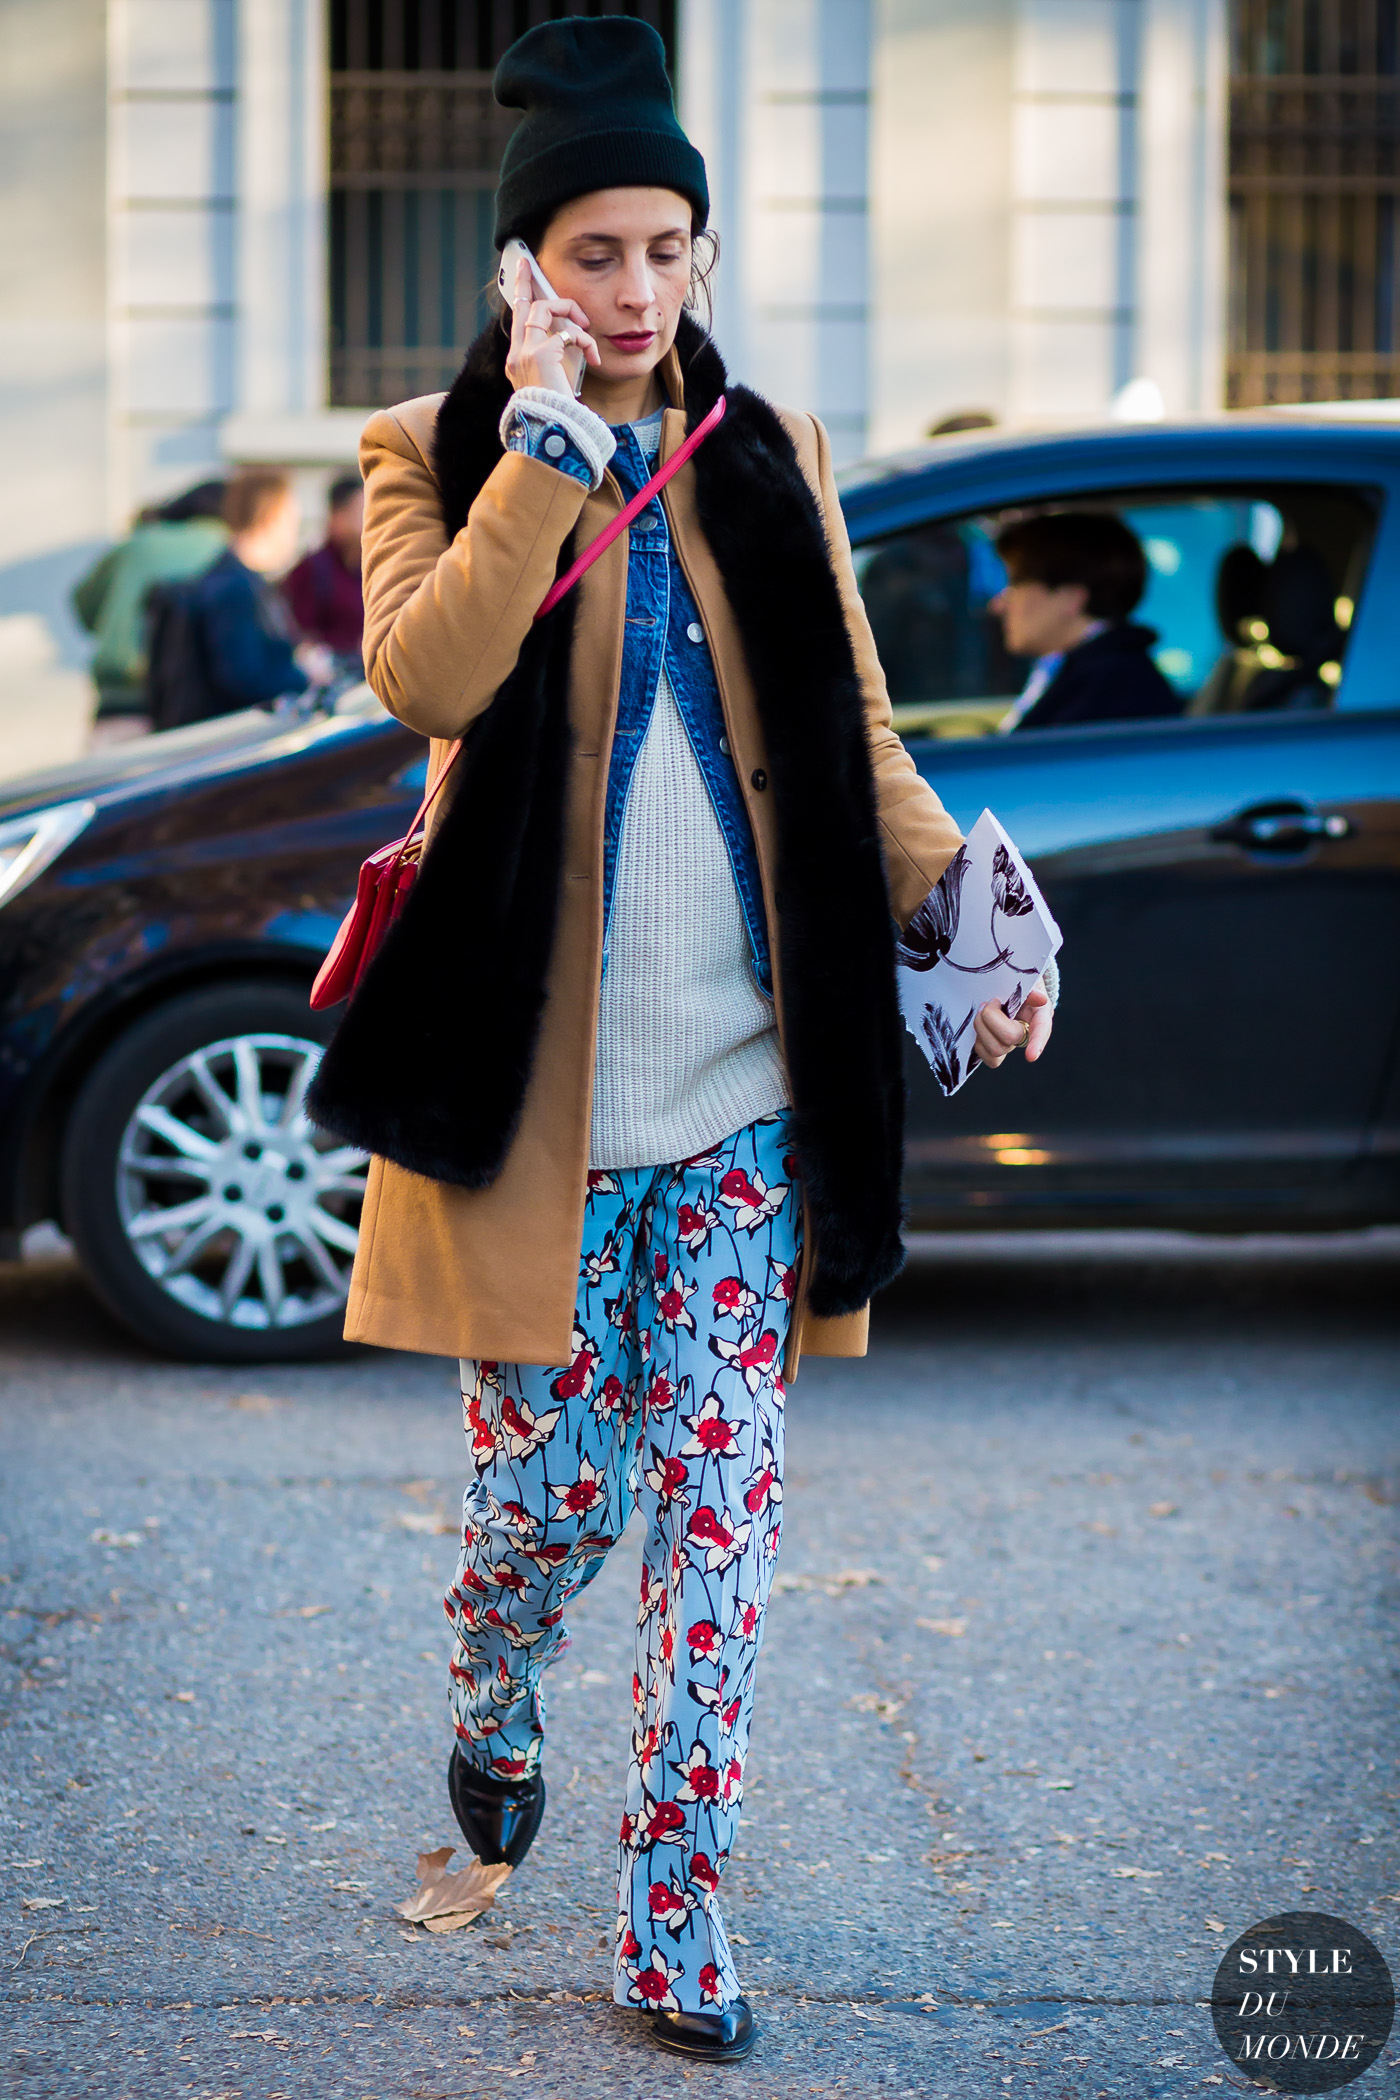 Michela Meni Street Style Street Fashion Streetsnaps by STYLEDUMONDE Street Style Fashion Photography